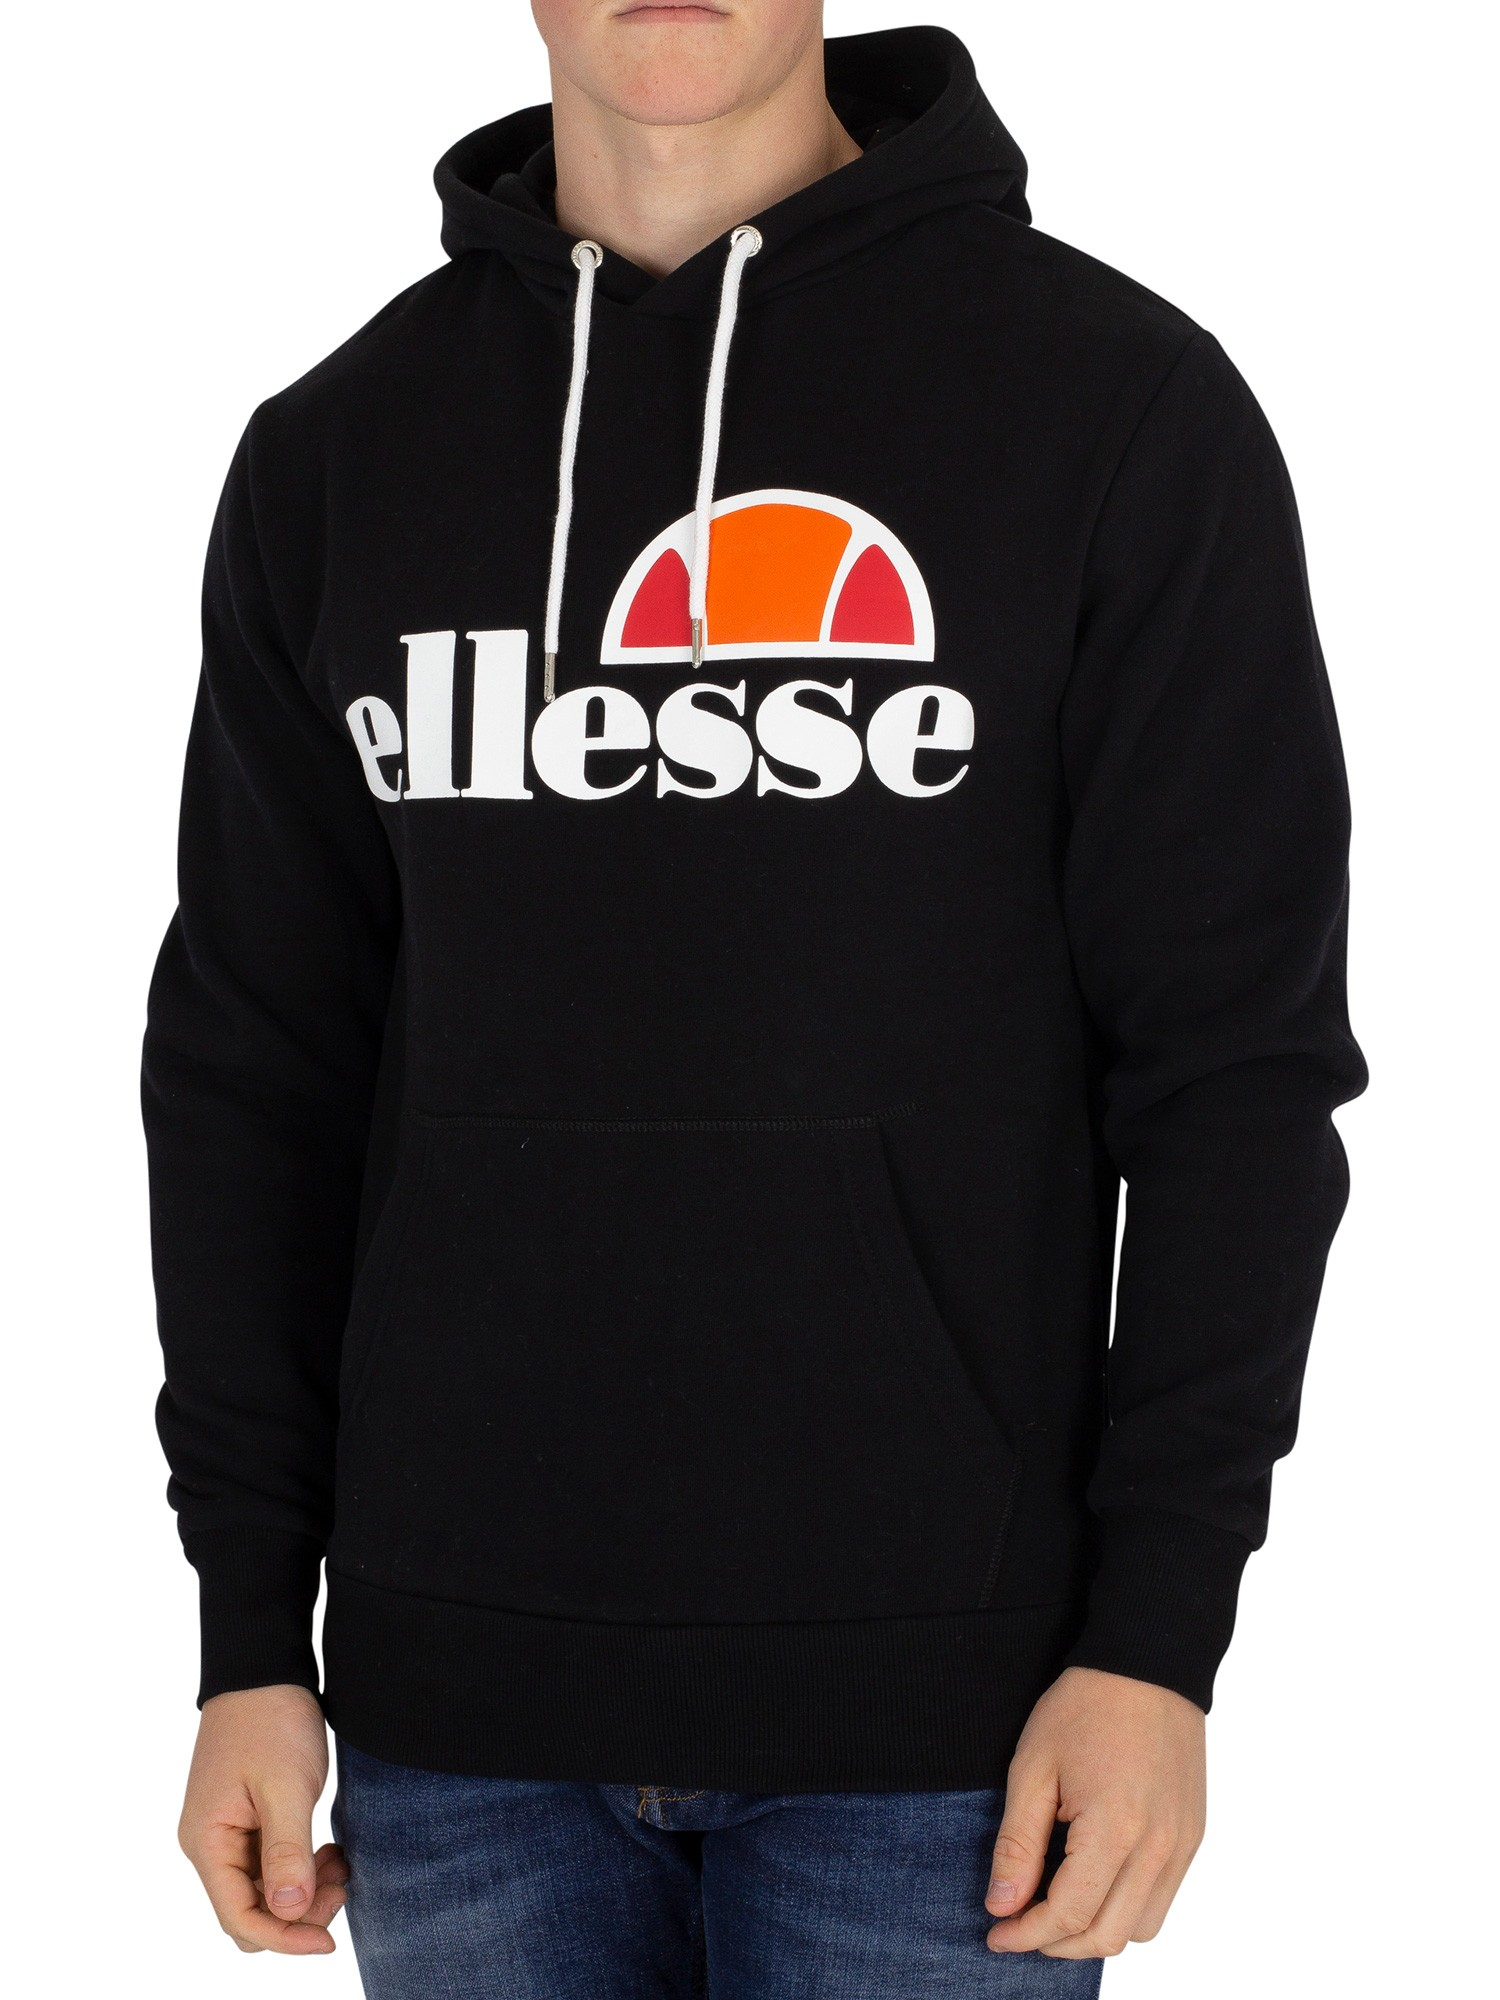 ellesse herren gottero graphic hoodie schwarz ebay. Black Bedroom Furniture Sets. Home Design Ideas